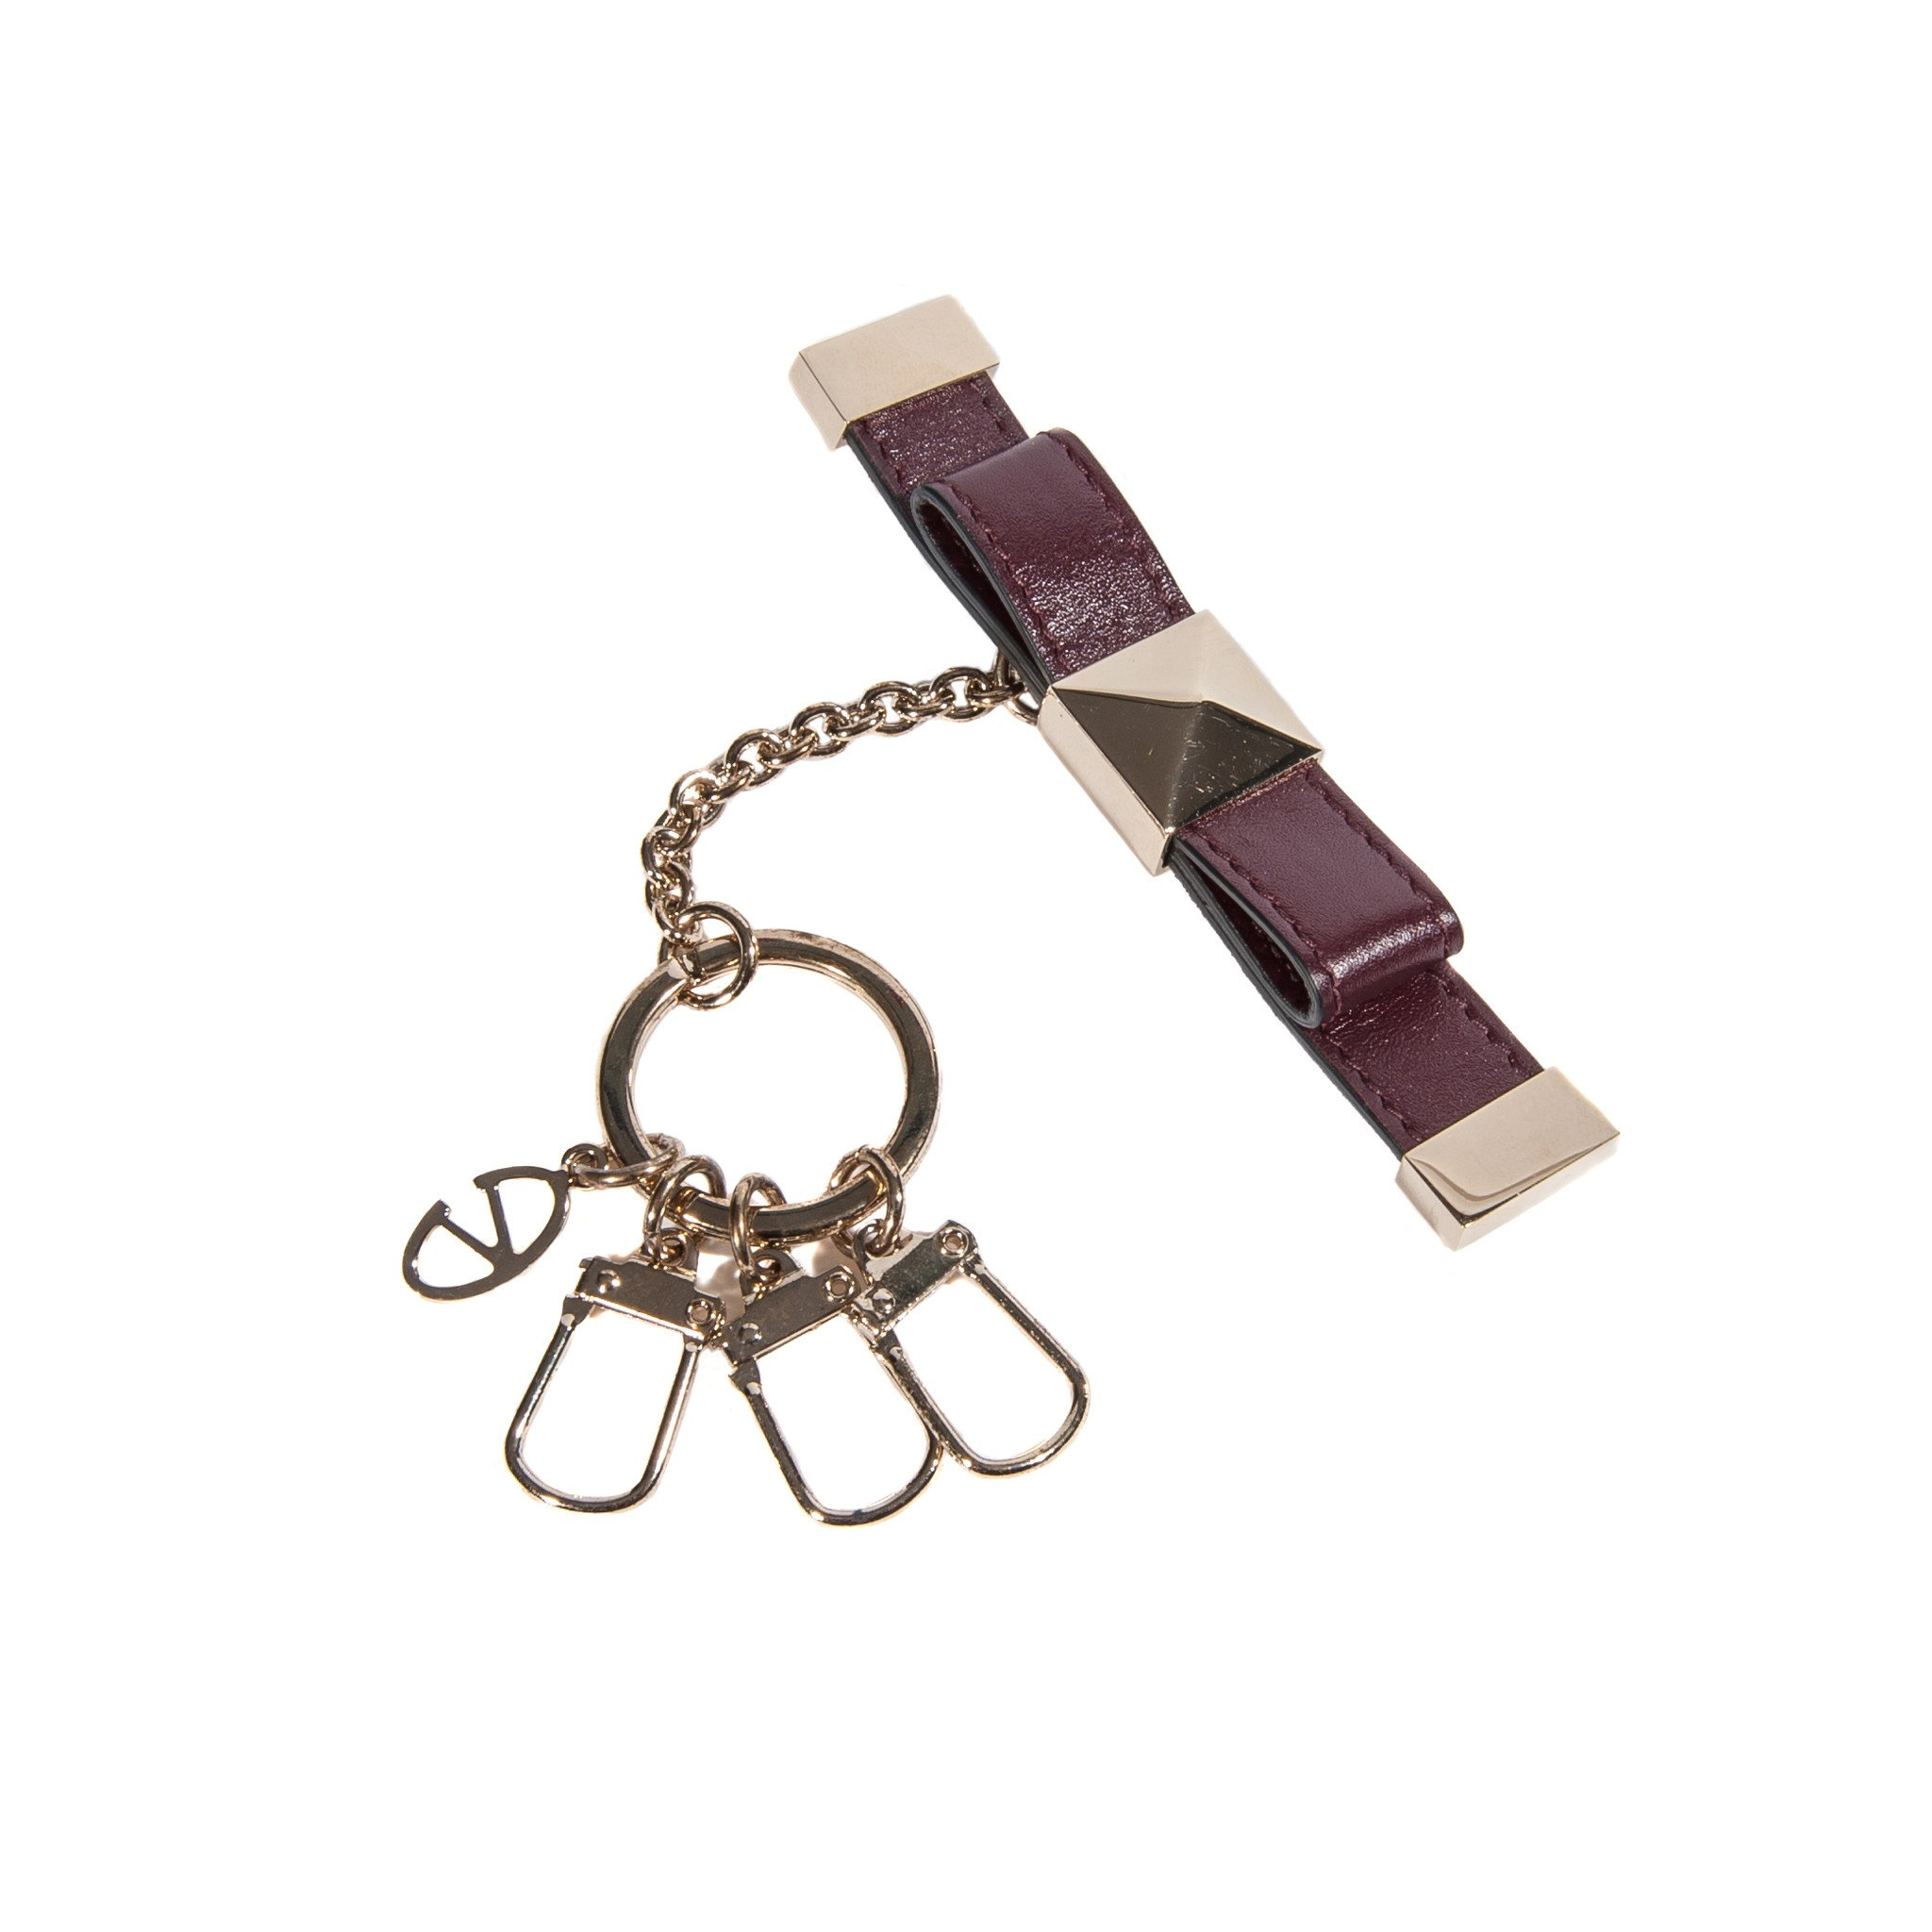 Valentino Woman Man Brown Leather Key Ring